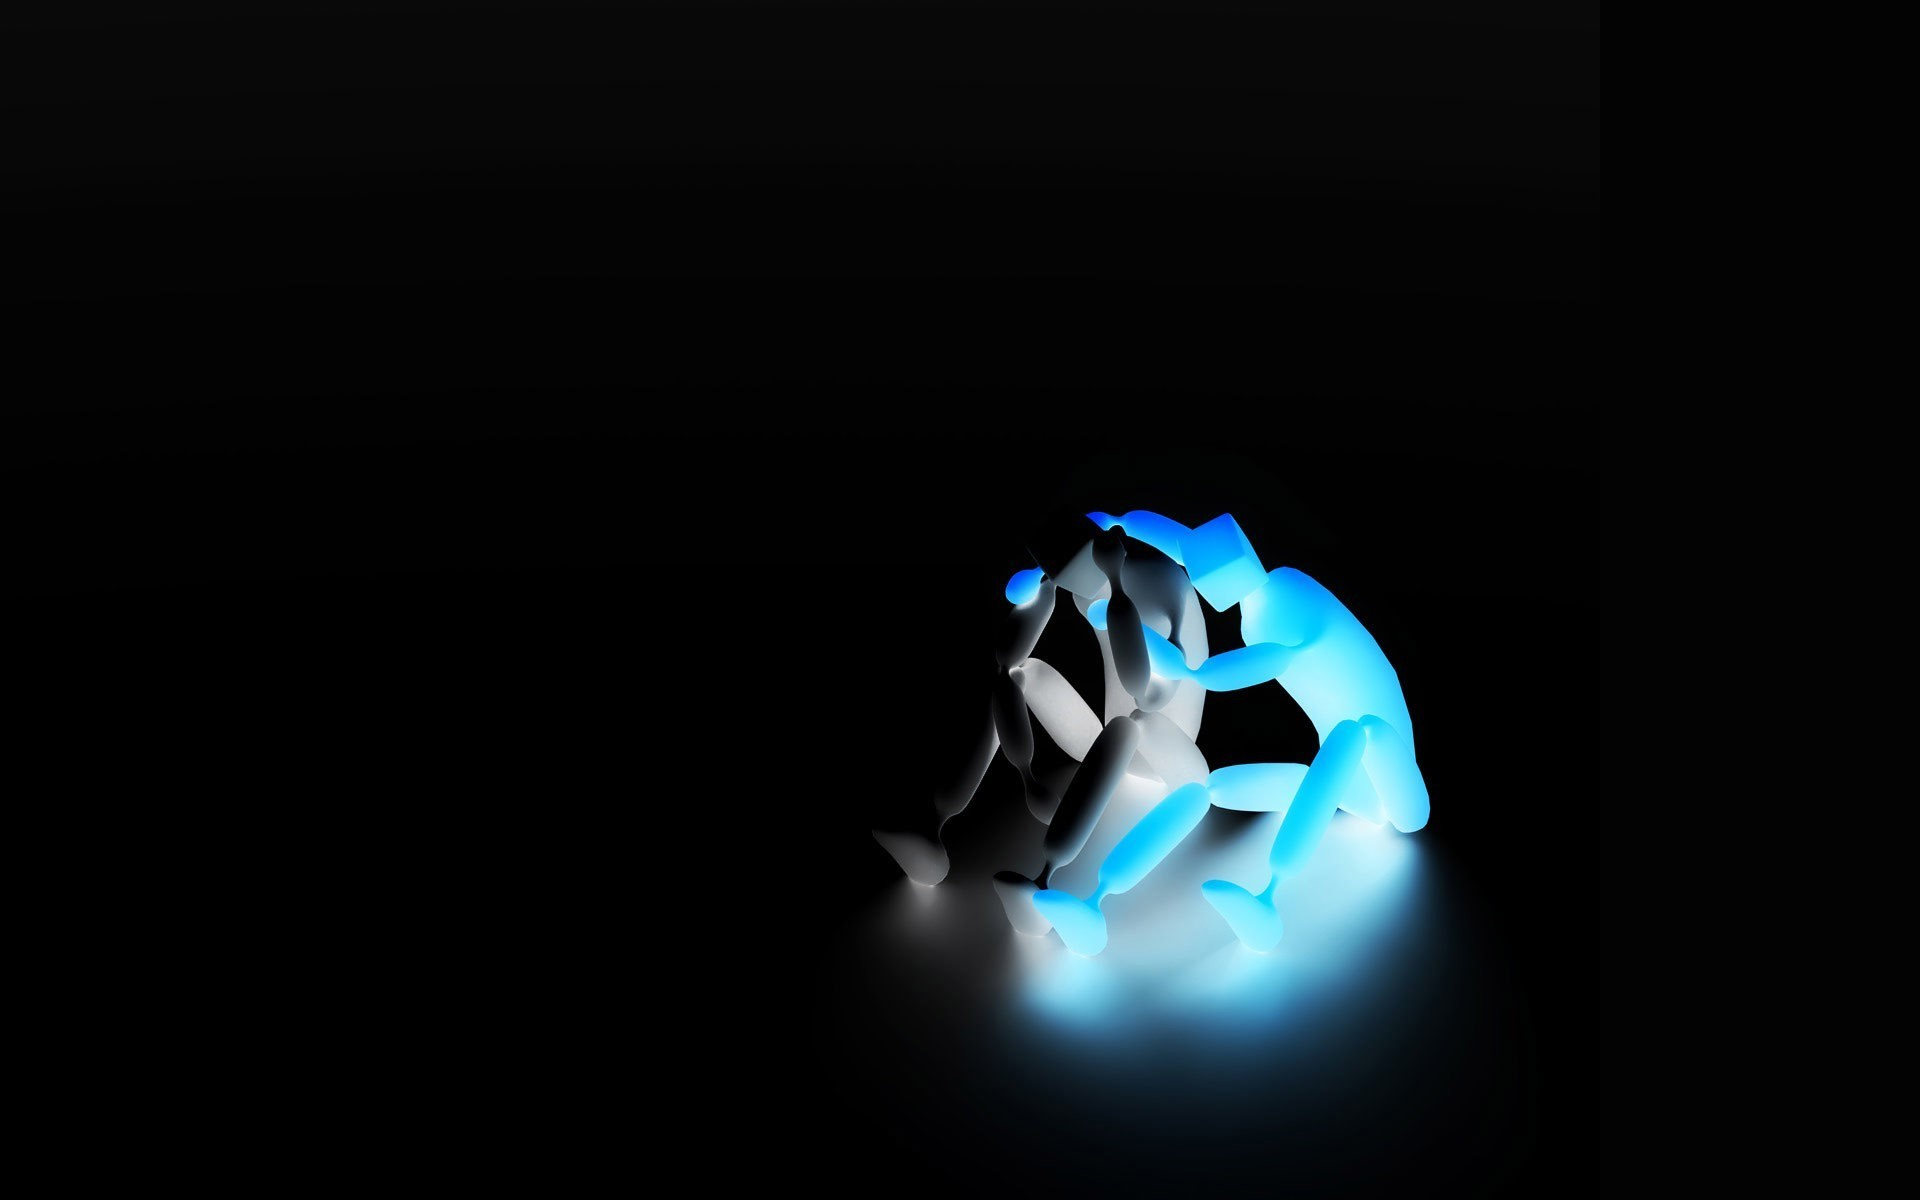 black and shining blue statue with black background HD Wallpapers 1920 x 1200 Wallpaper